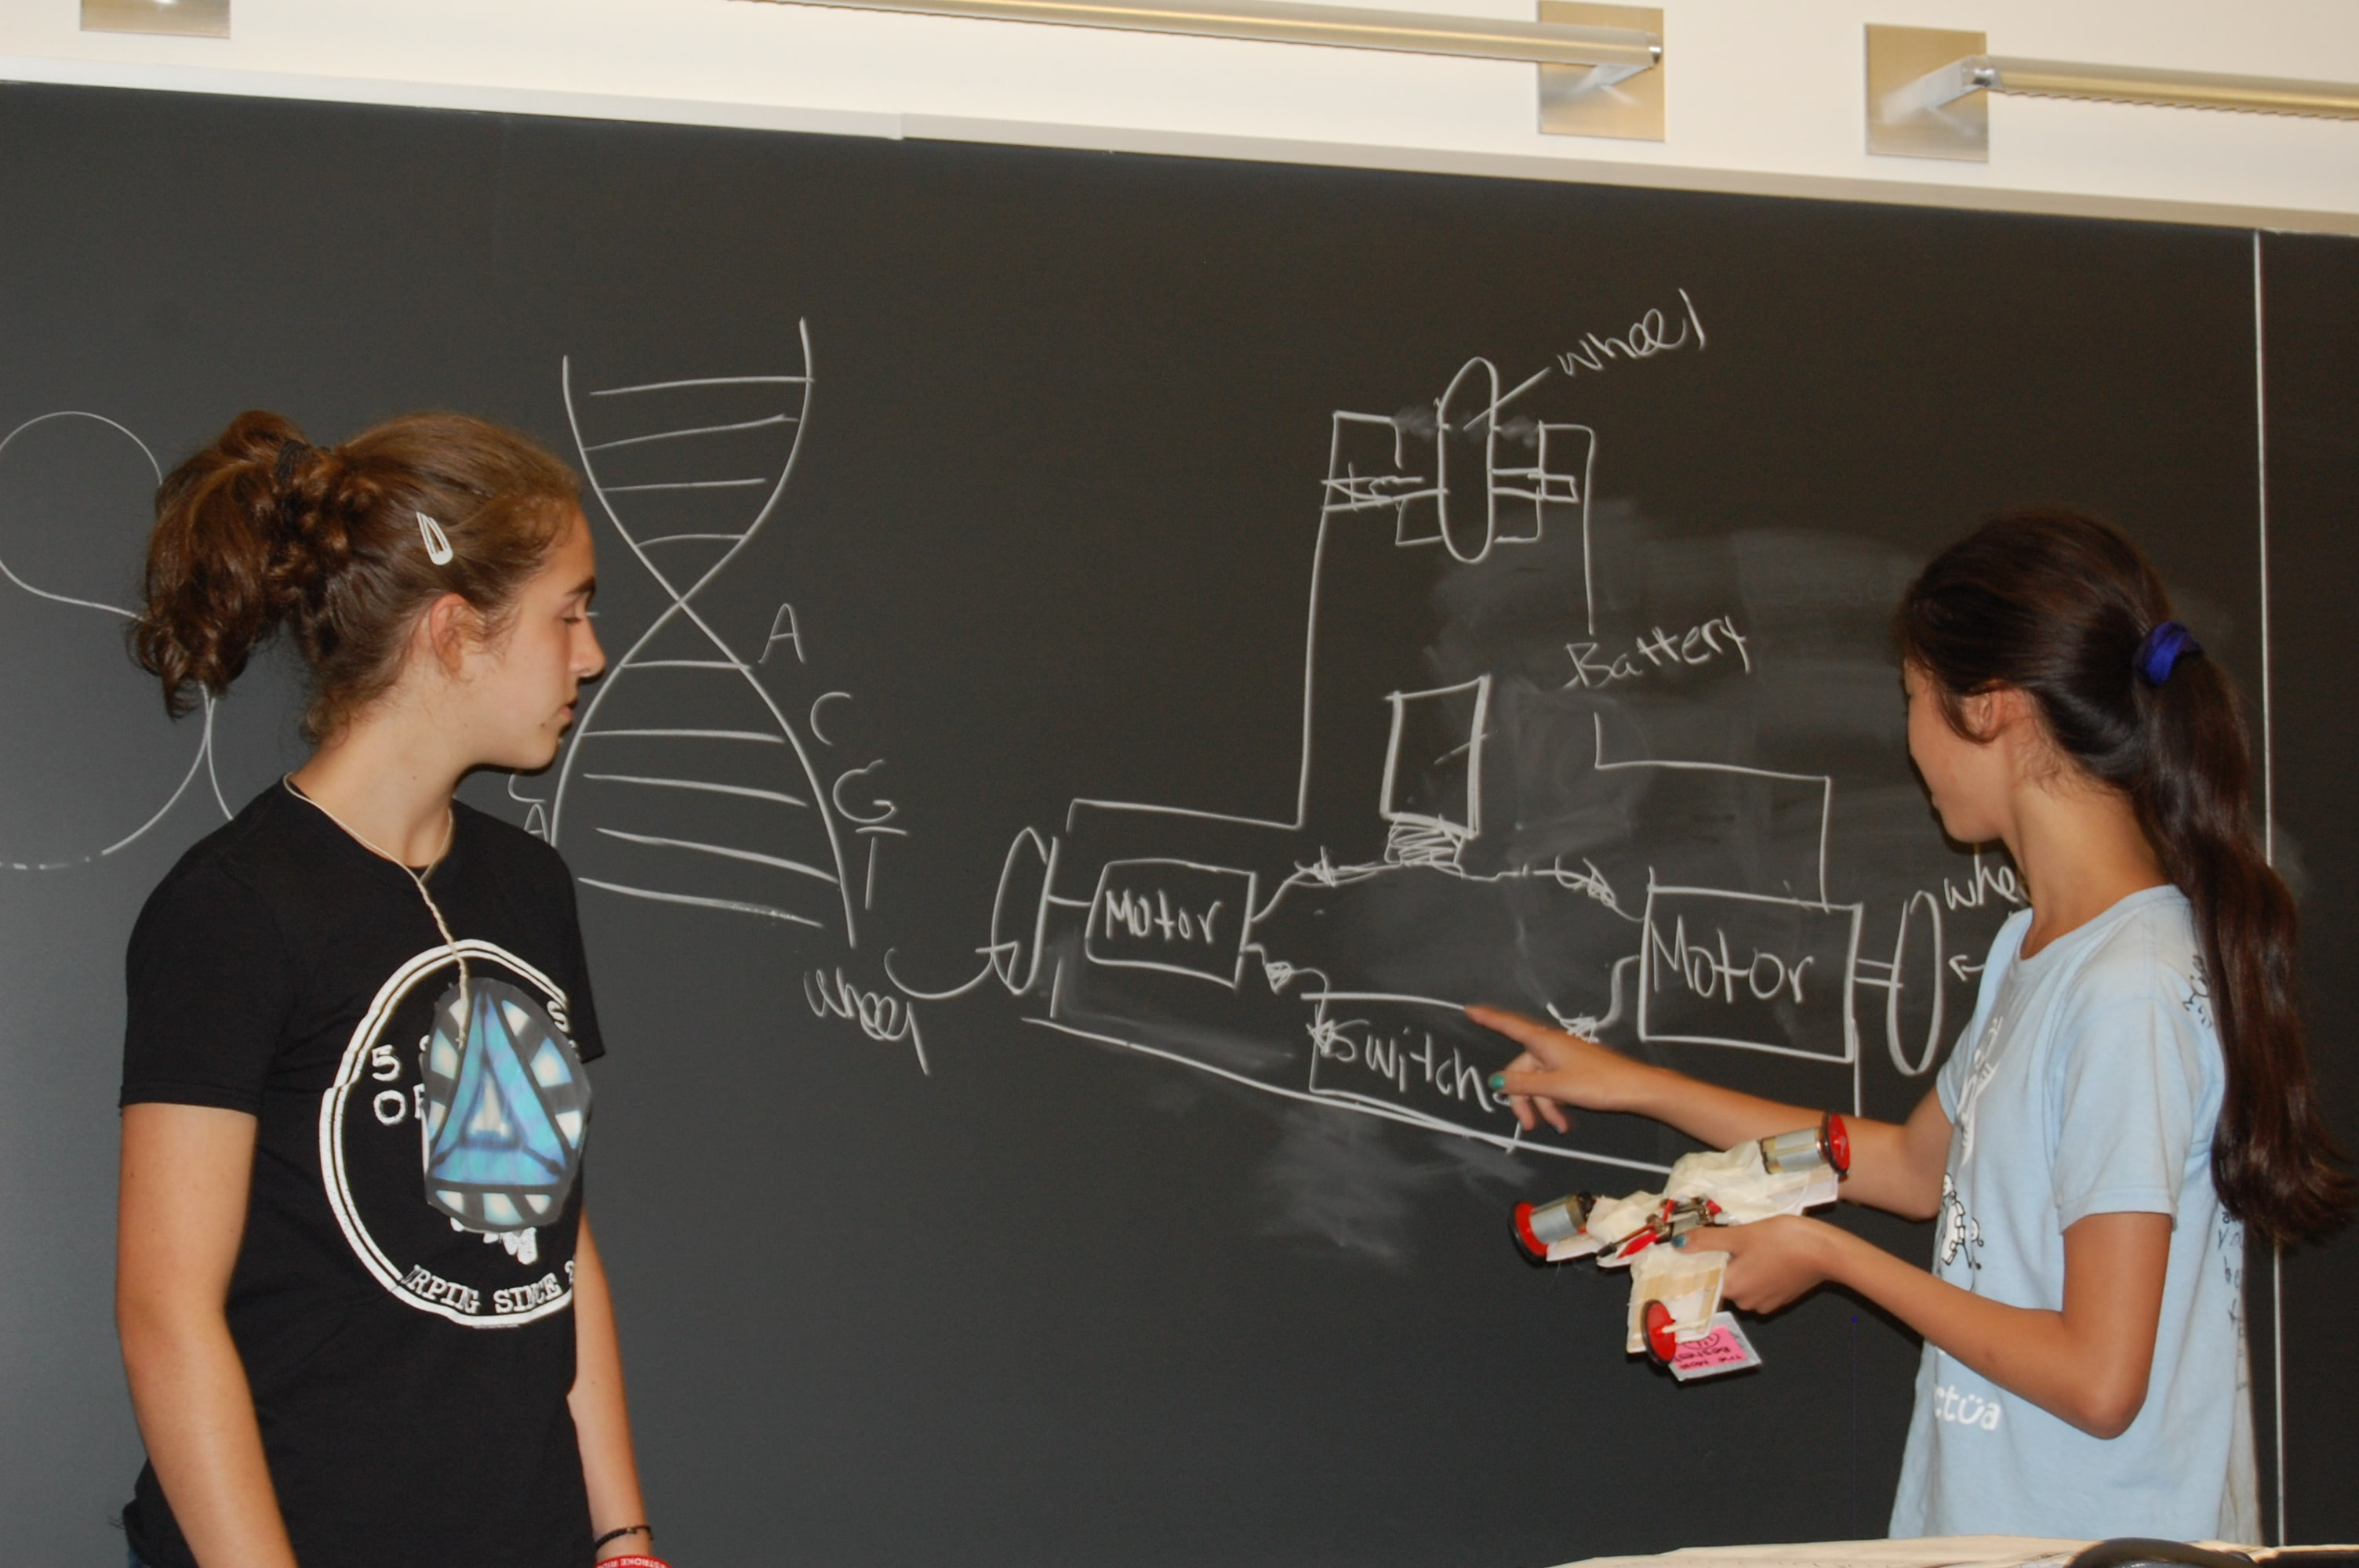 Two young females in front of chalkboard with technical writing on it.